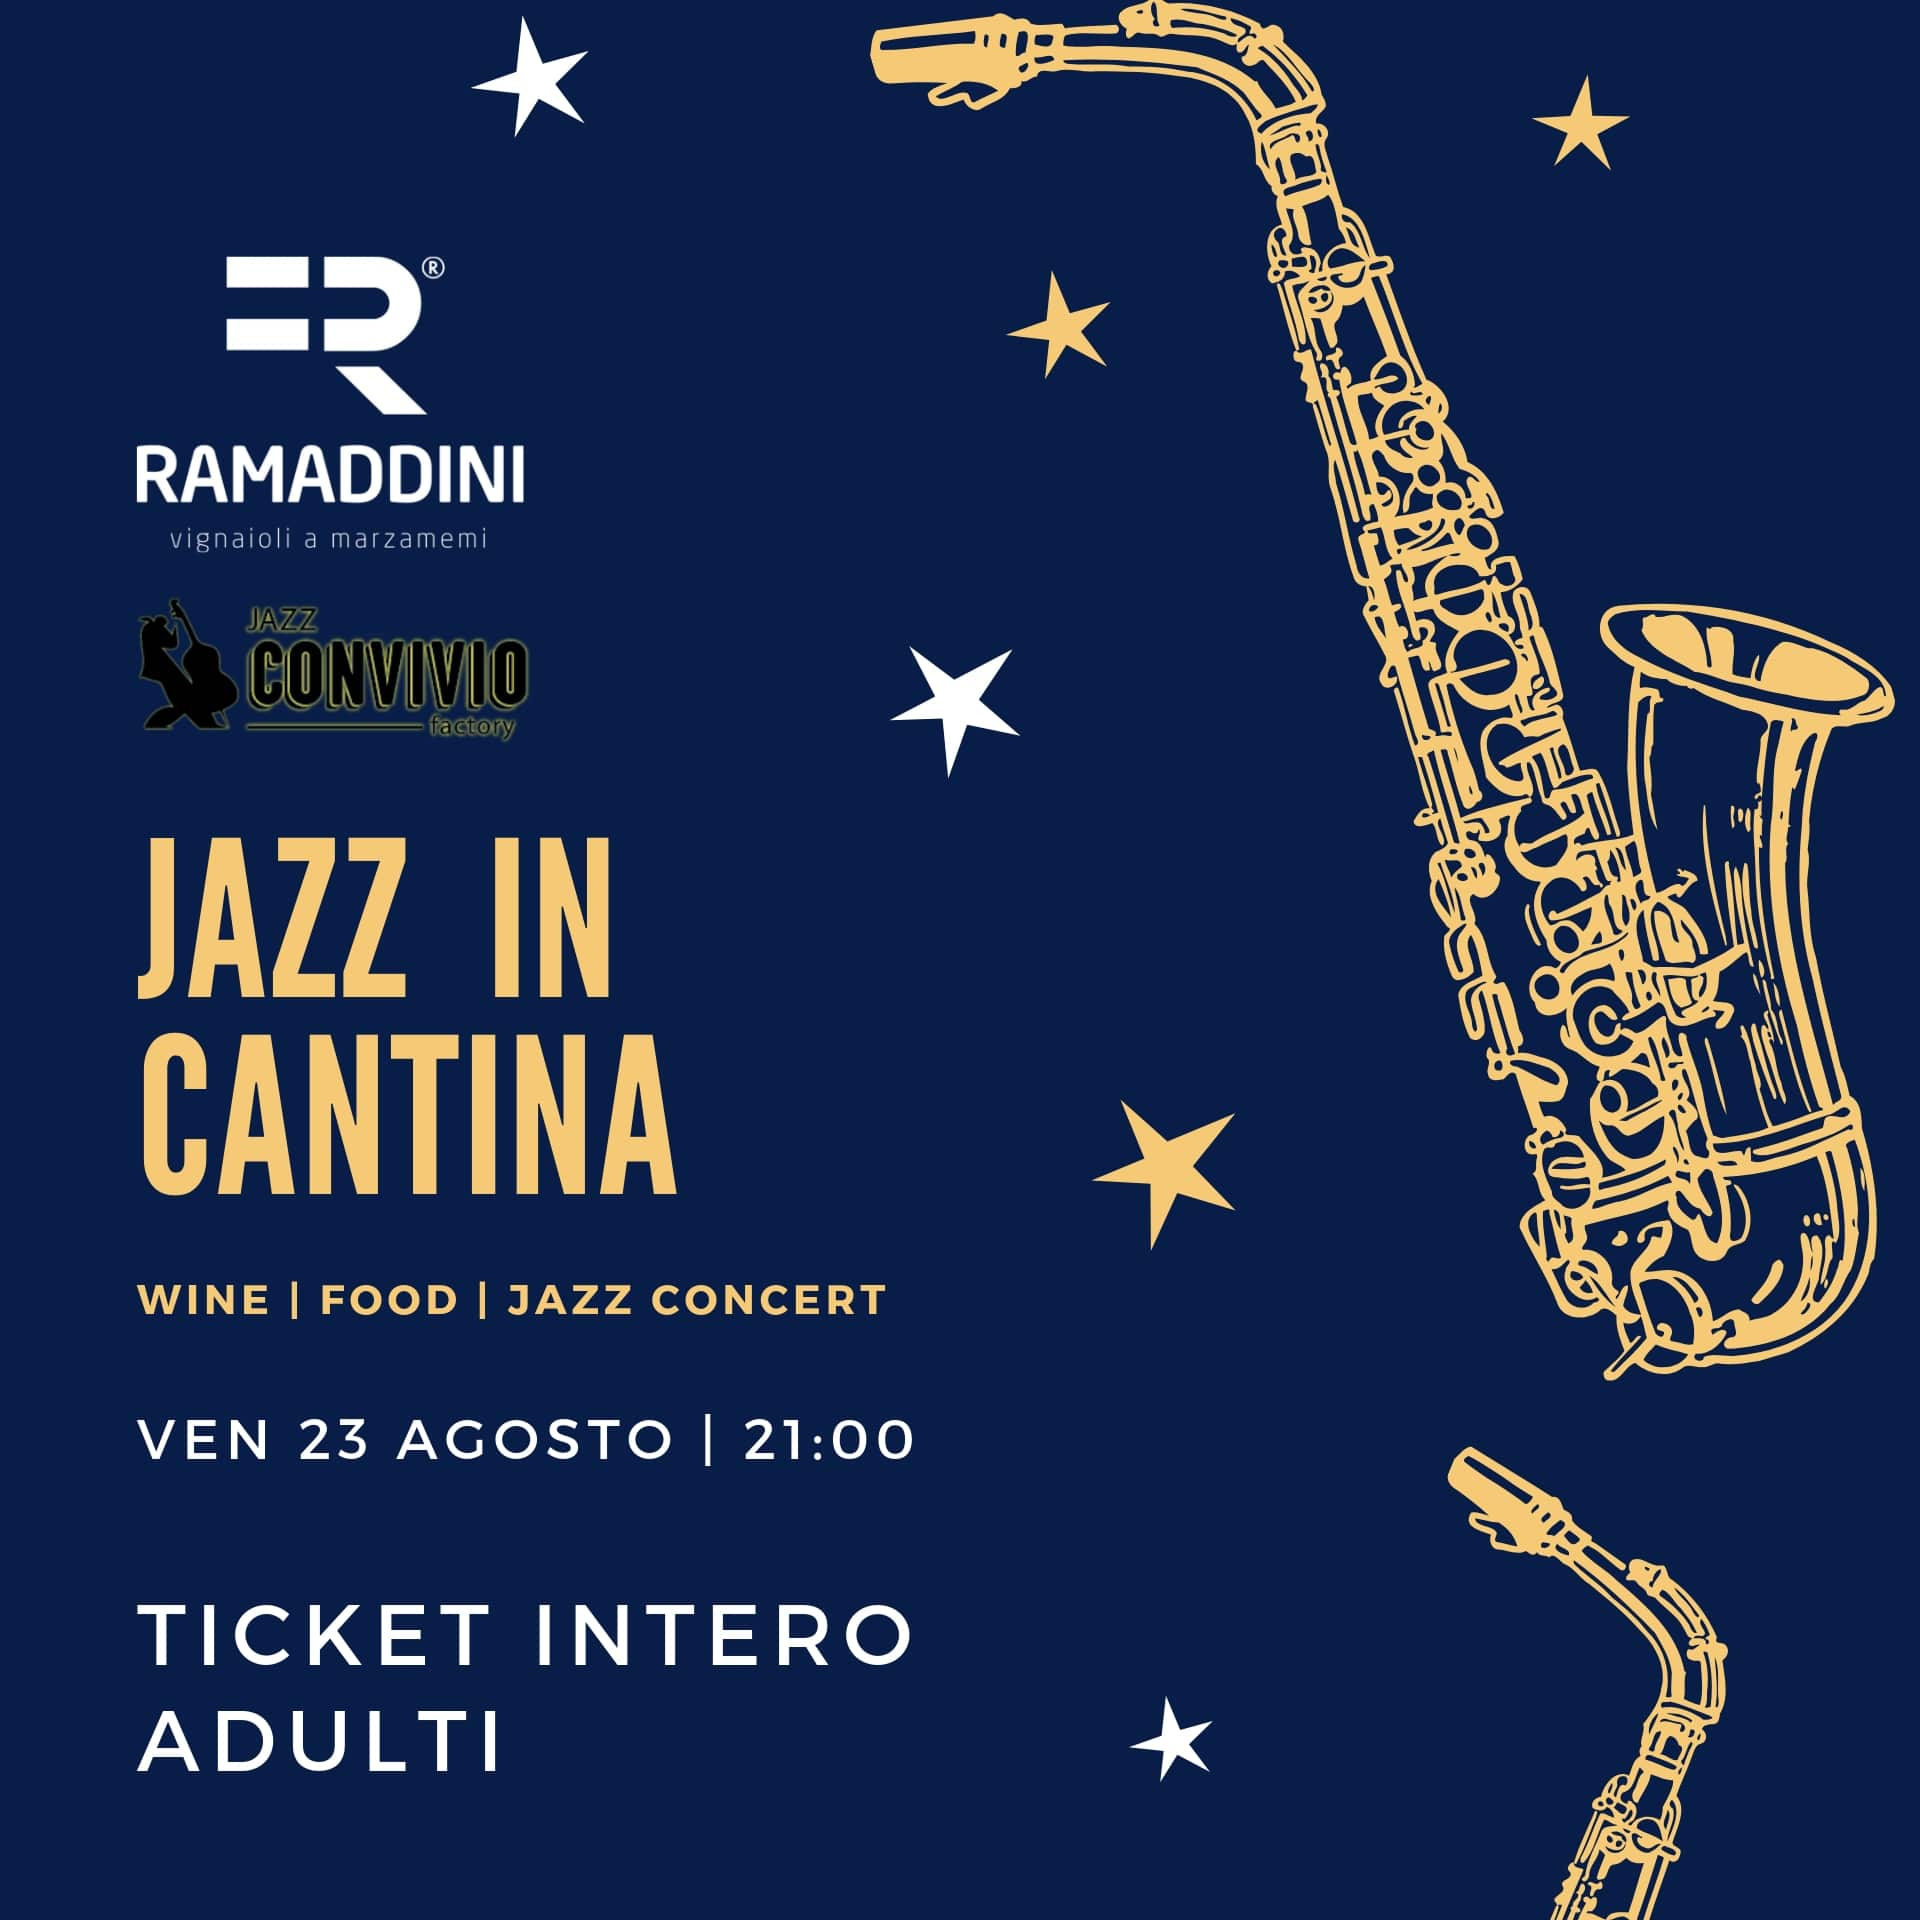 serata jazz marzamemi 23 agosto ticket